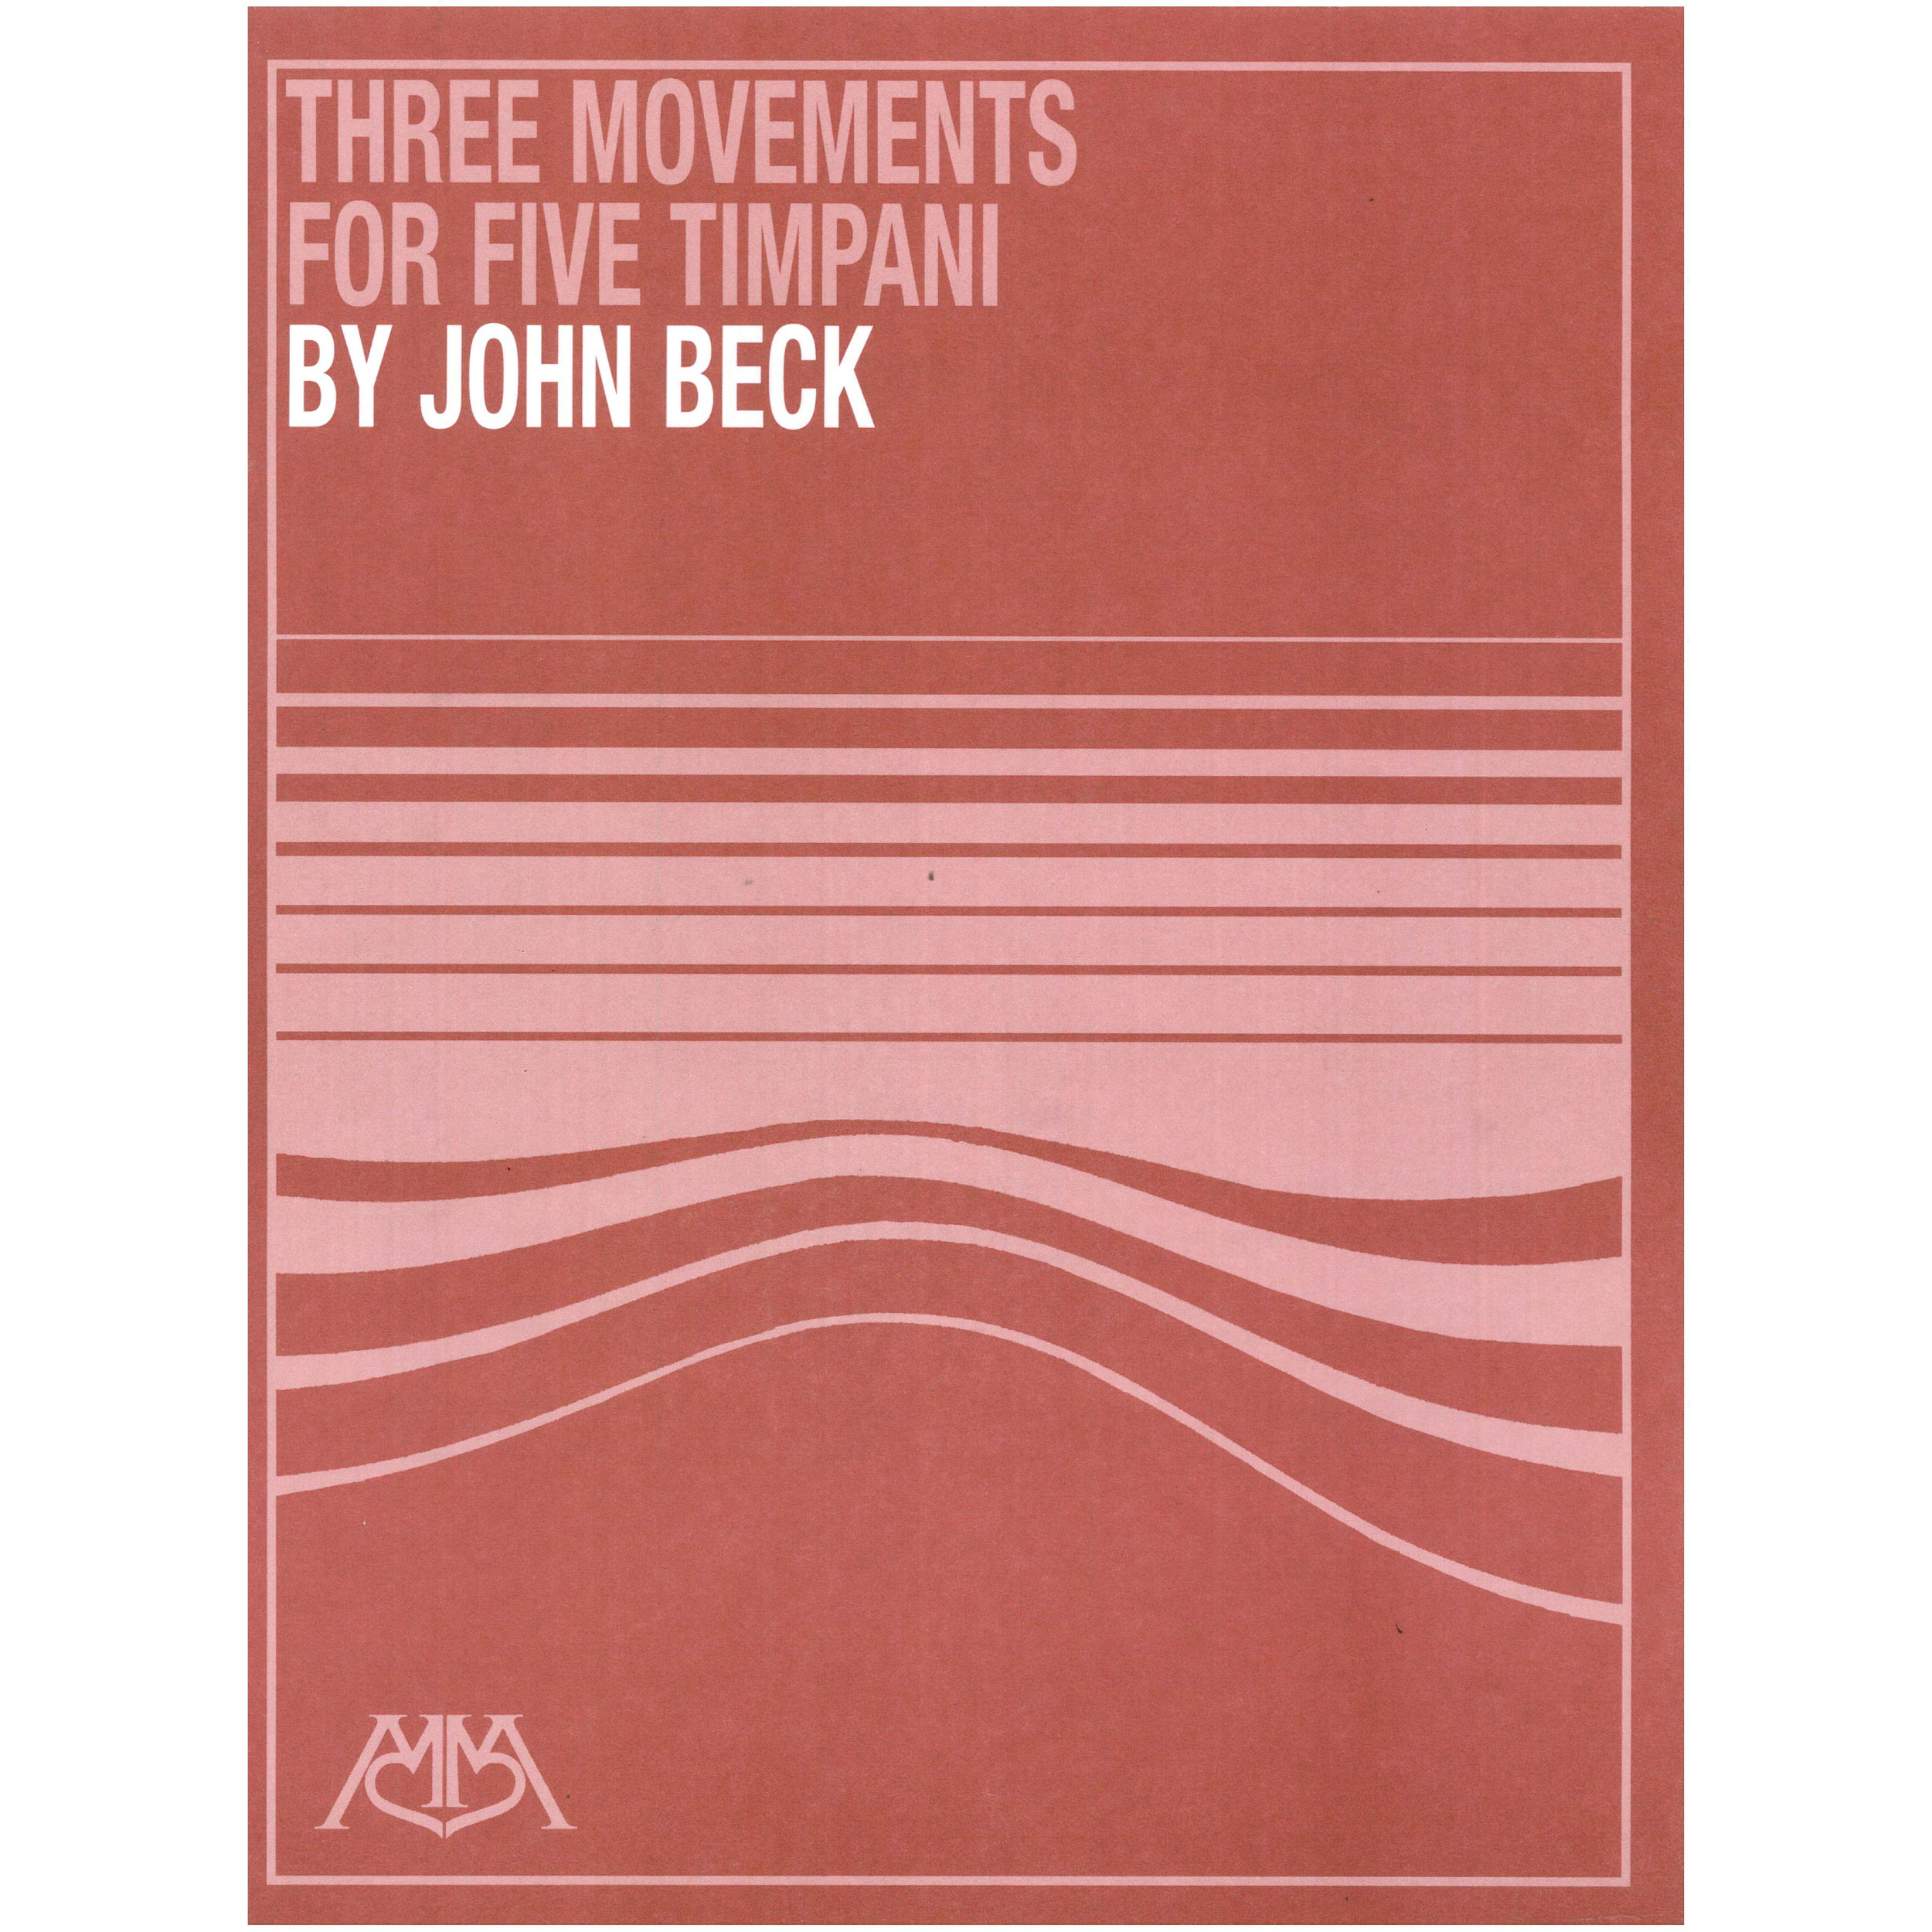 Three Movements for Five Timpani by John Beck